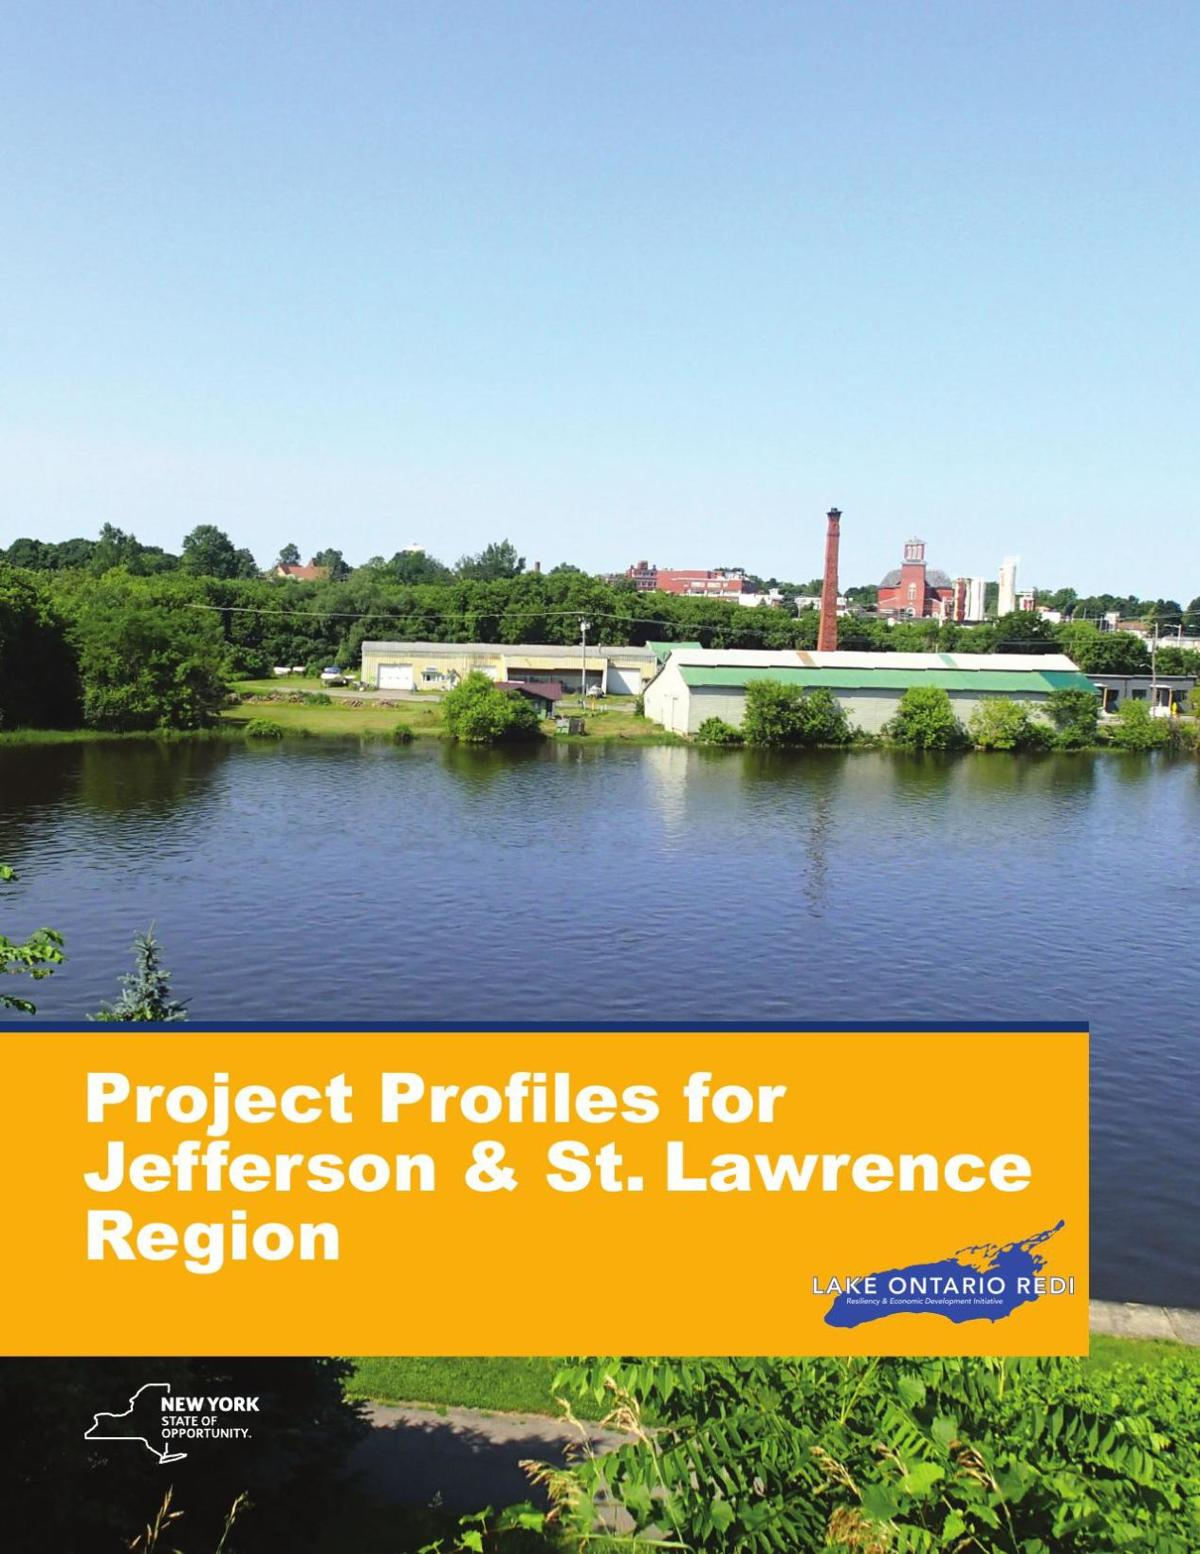 Project profiles for Jefferson & St. Lawrence Region